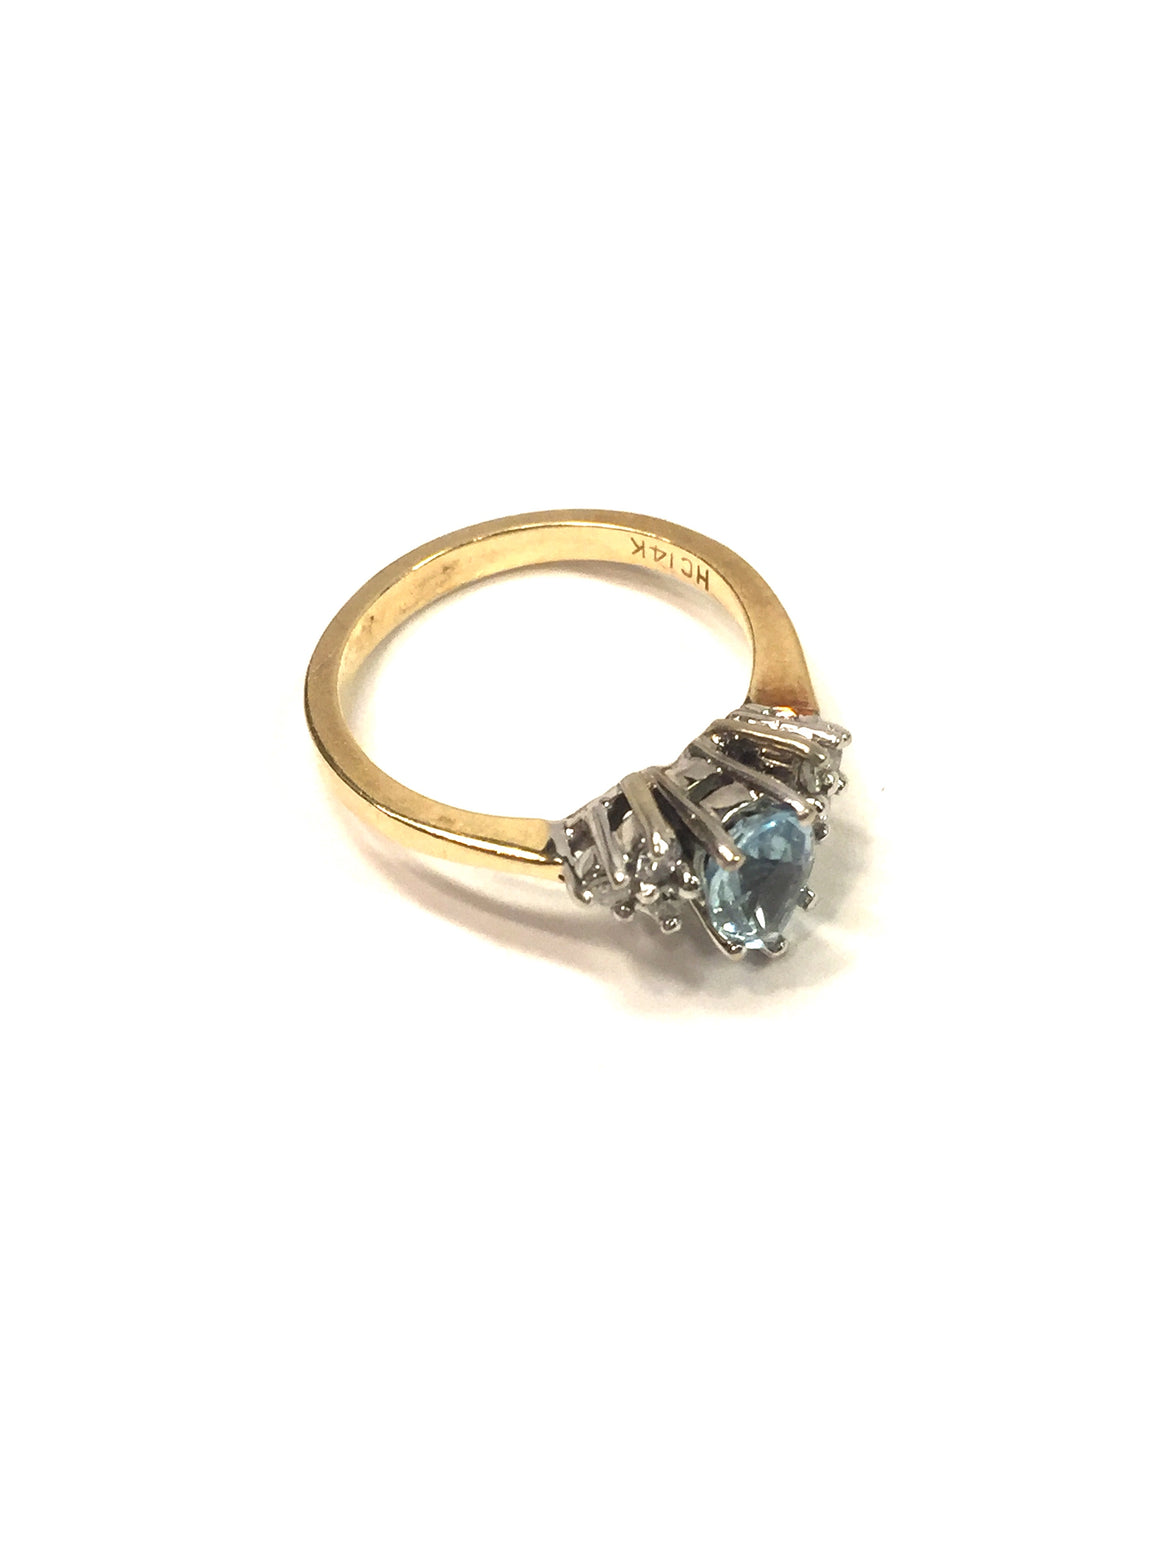 14K Yellow & White Gold Teardrop Blue Topaz Center Diamond Chips Ring Sz6.25